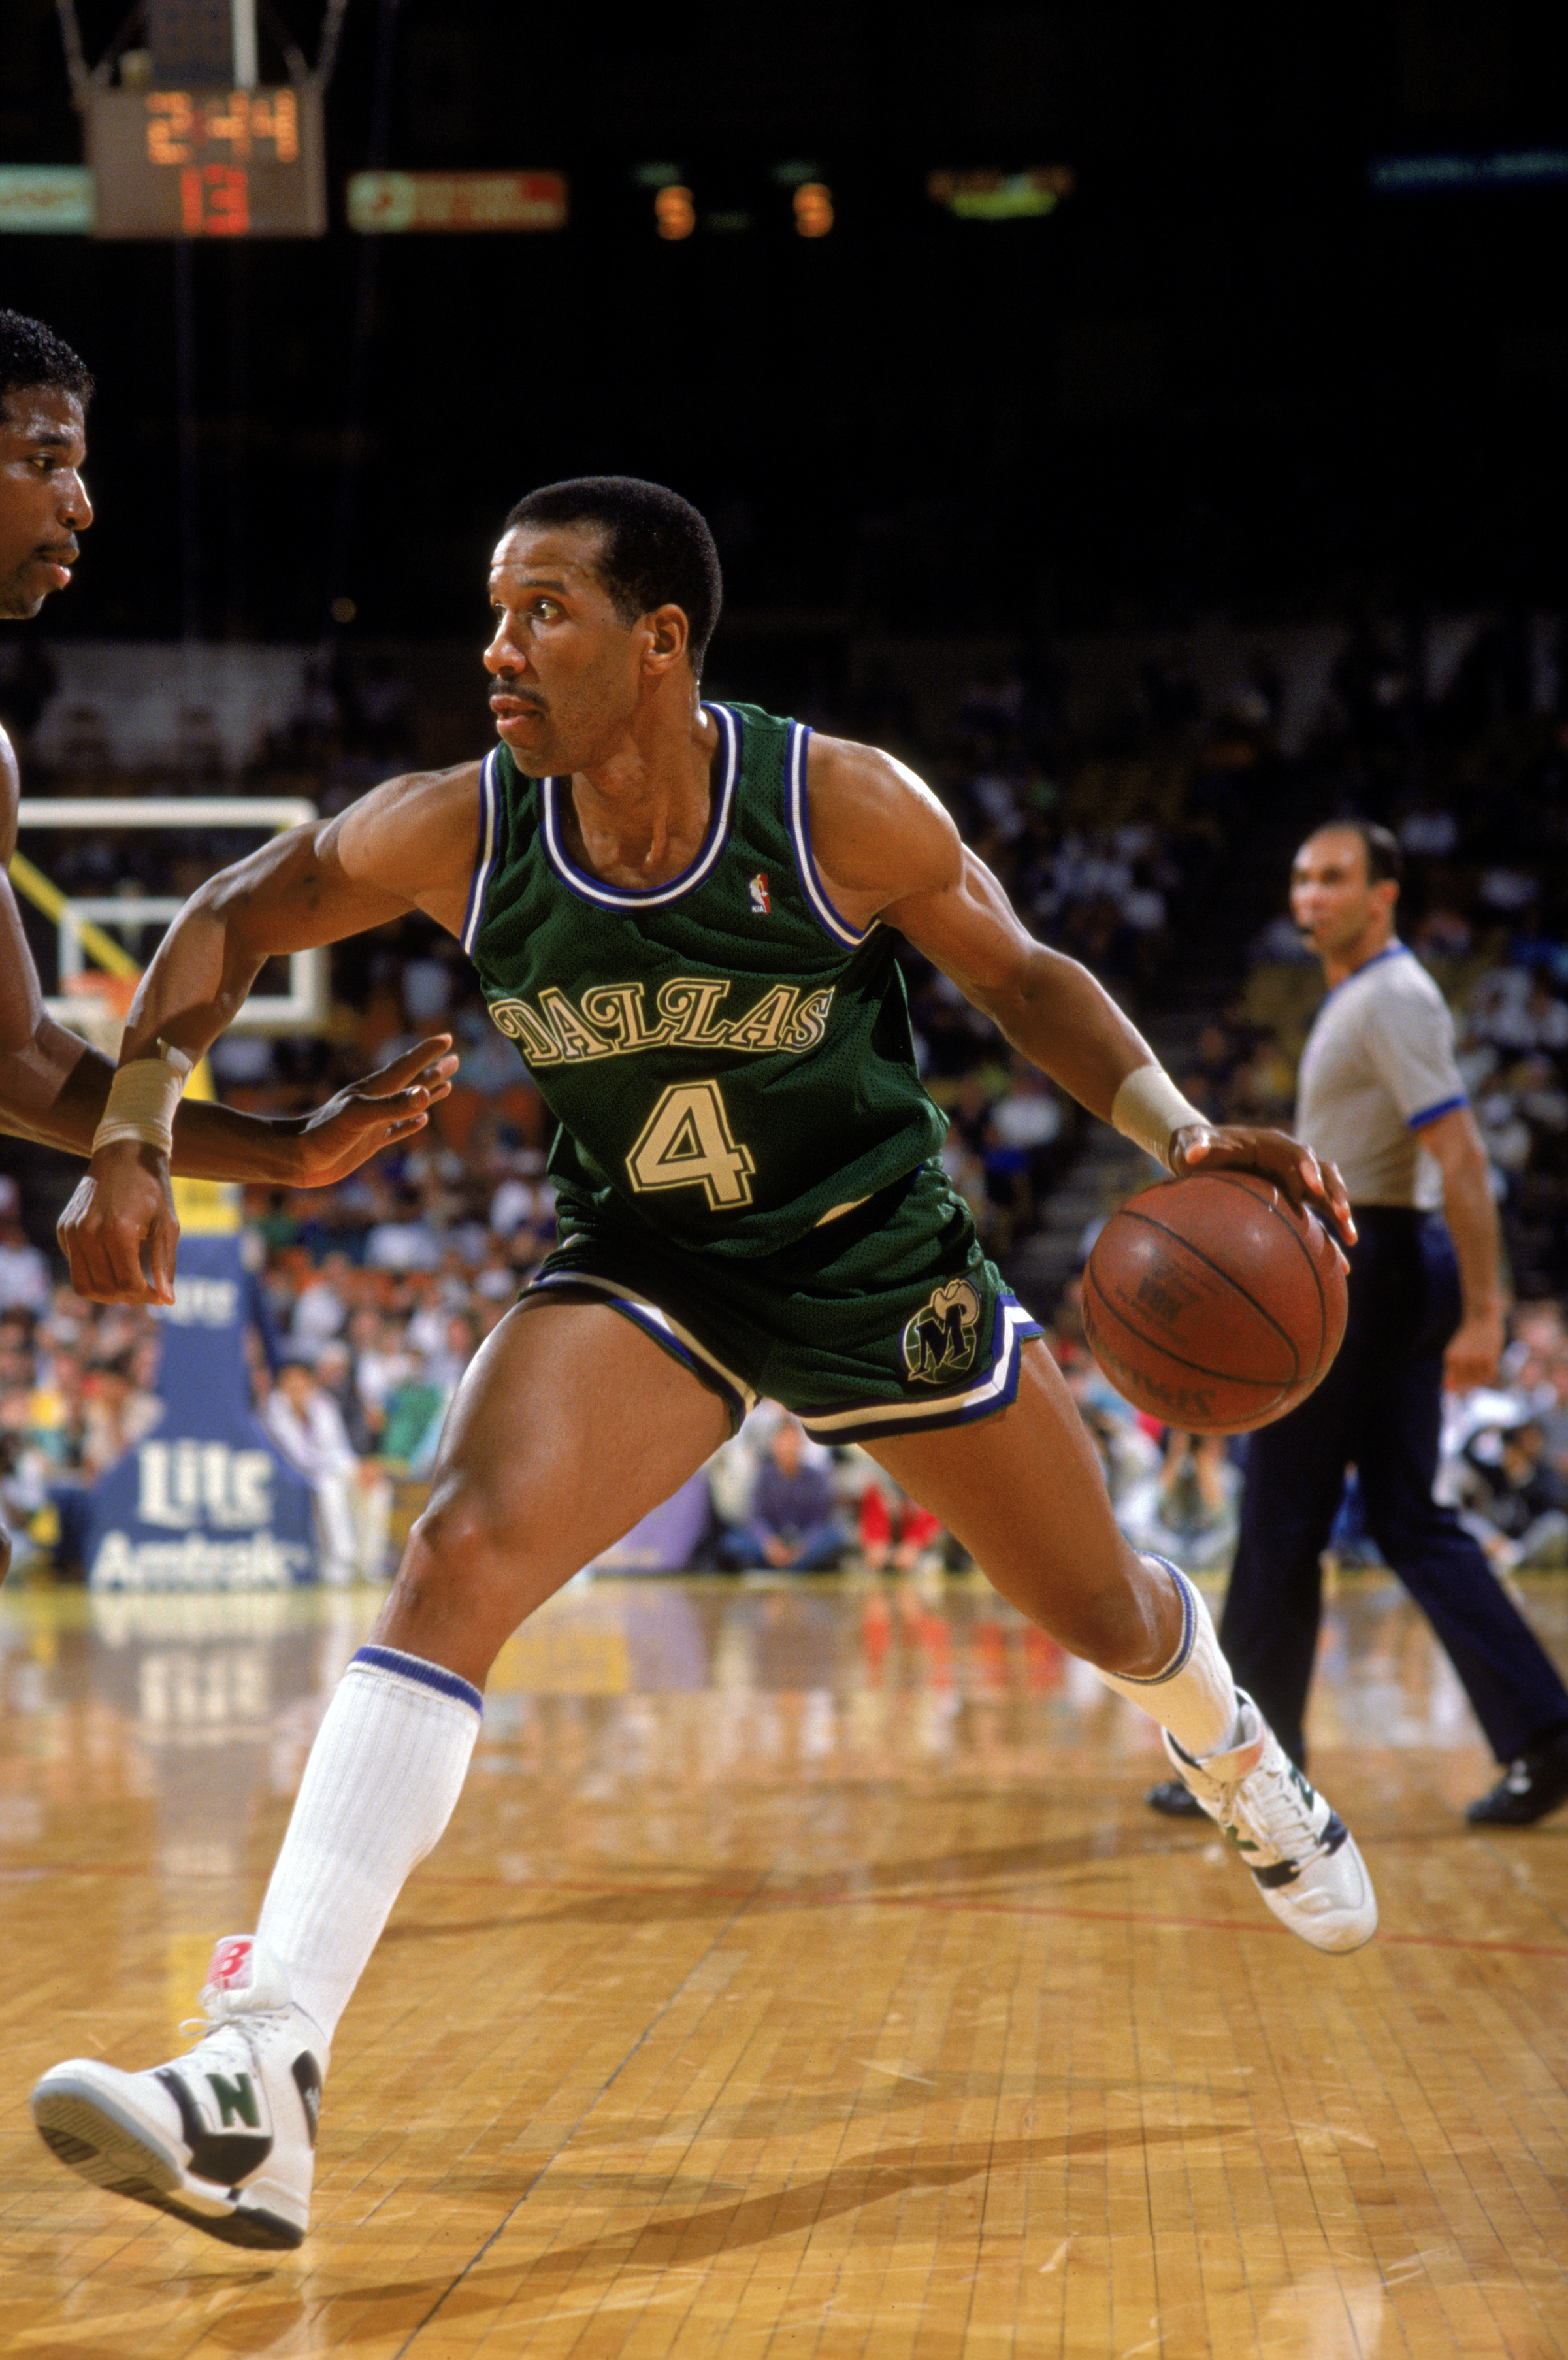 LOS ANGELES - 1988:  Adrian Dantley #4 of the Dallas Mavericks drives the ball during the NBA game against the Los Angeles Lakers at the Great Western Forum in Los Angeles, California in 1988.  (Photo by Scott Halleran/Getty Images)